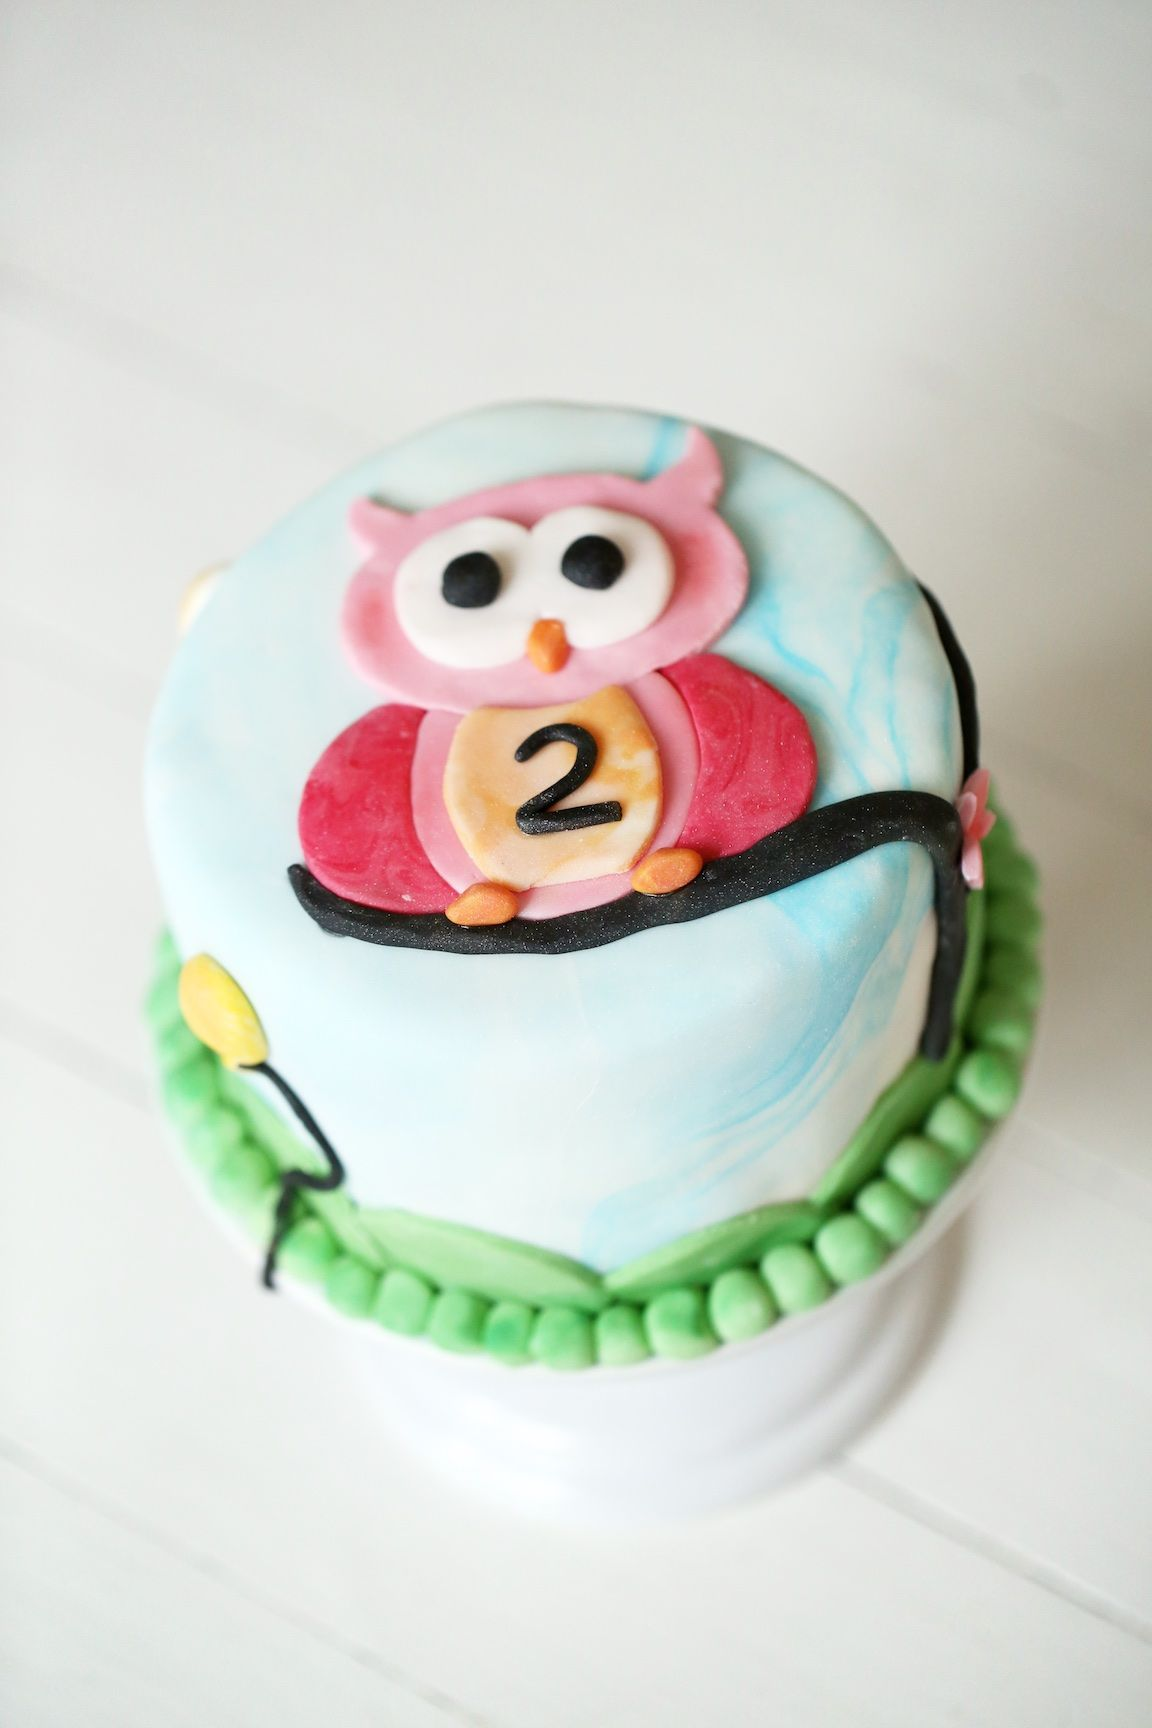 Birthday cake for a 2-year